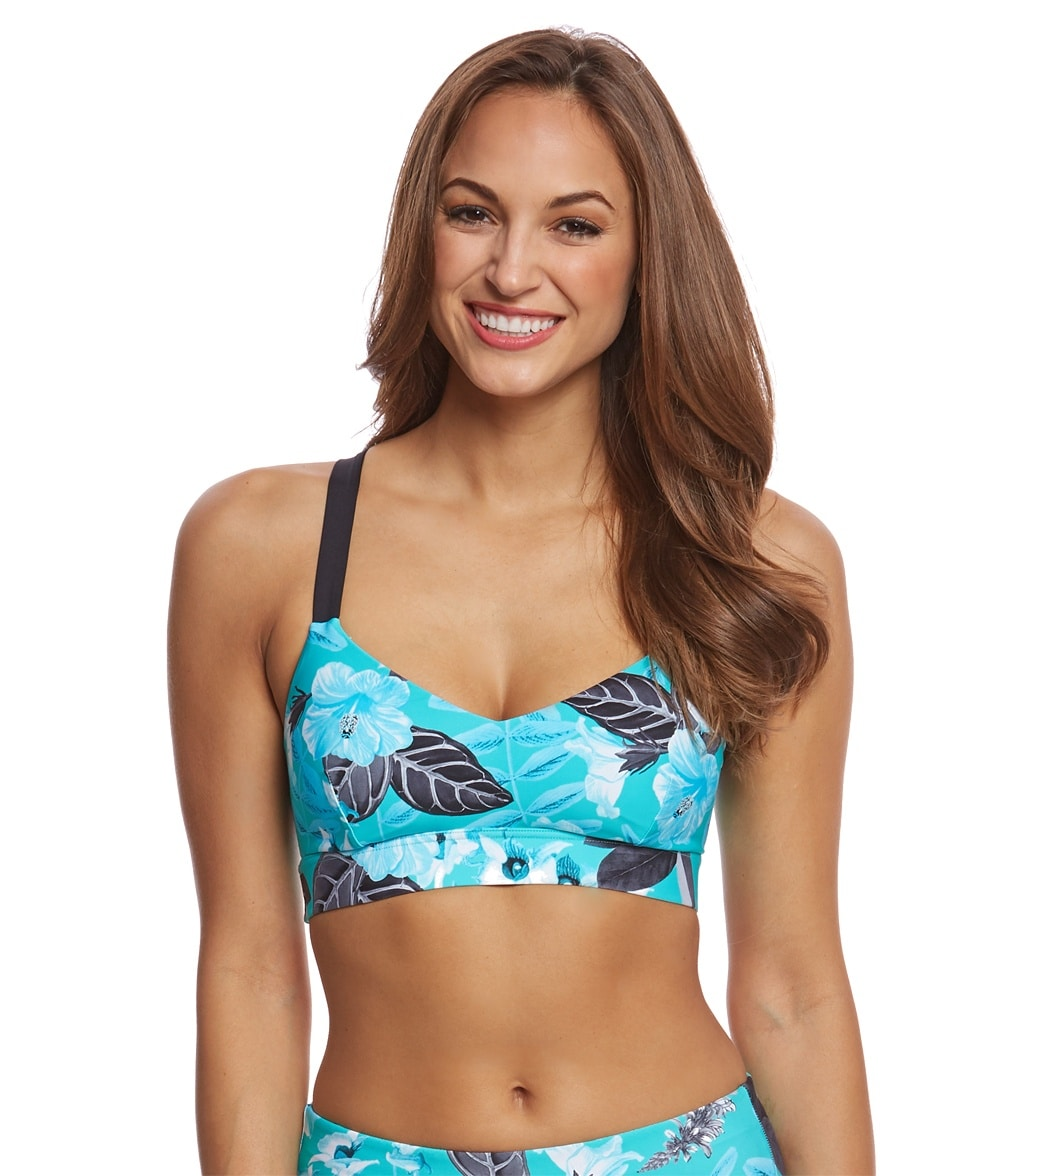 d5d01e923d Seafolly Tropical Vacay Hybrid Bralette Top at SwimOutlet.com - Free  Shipping